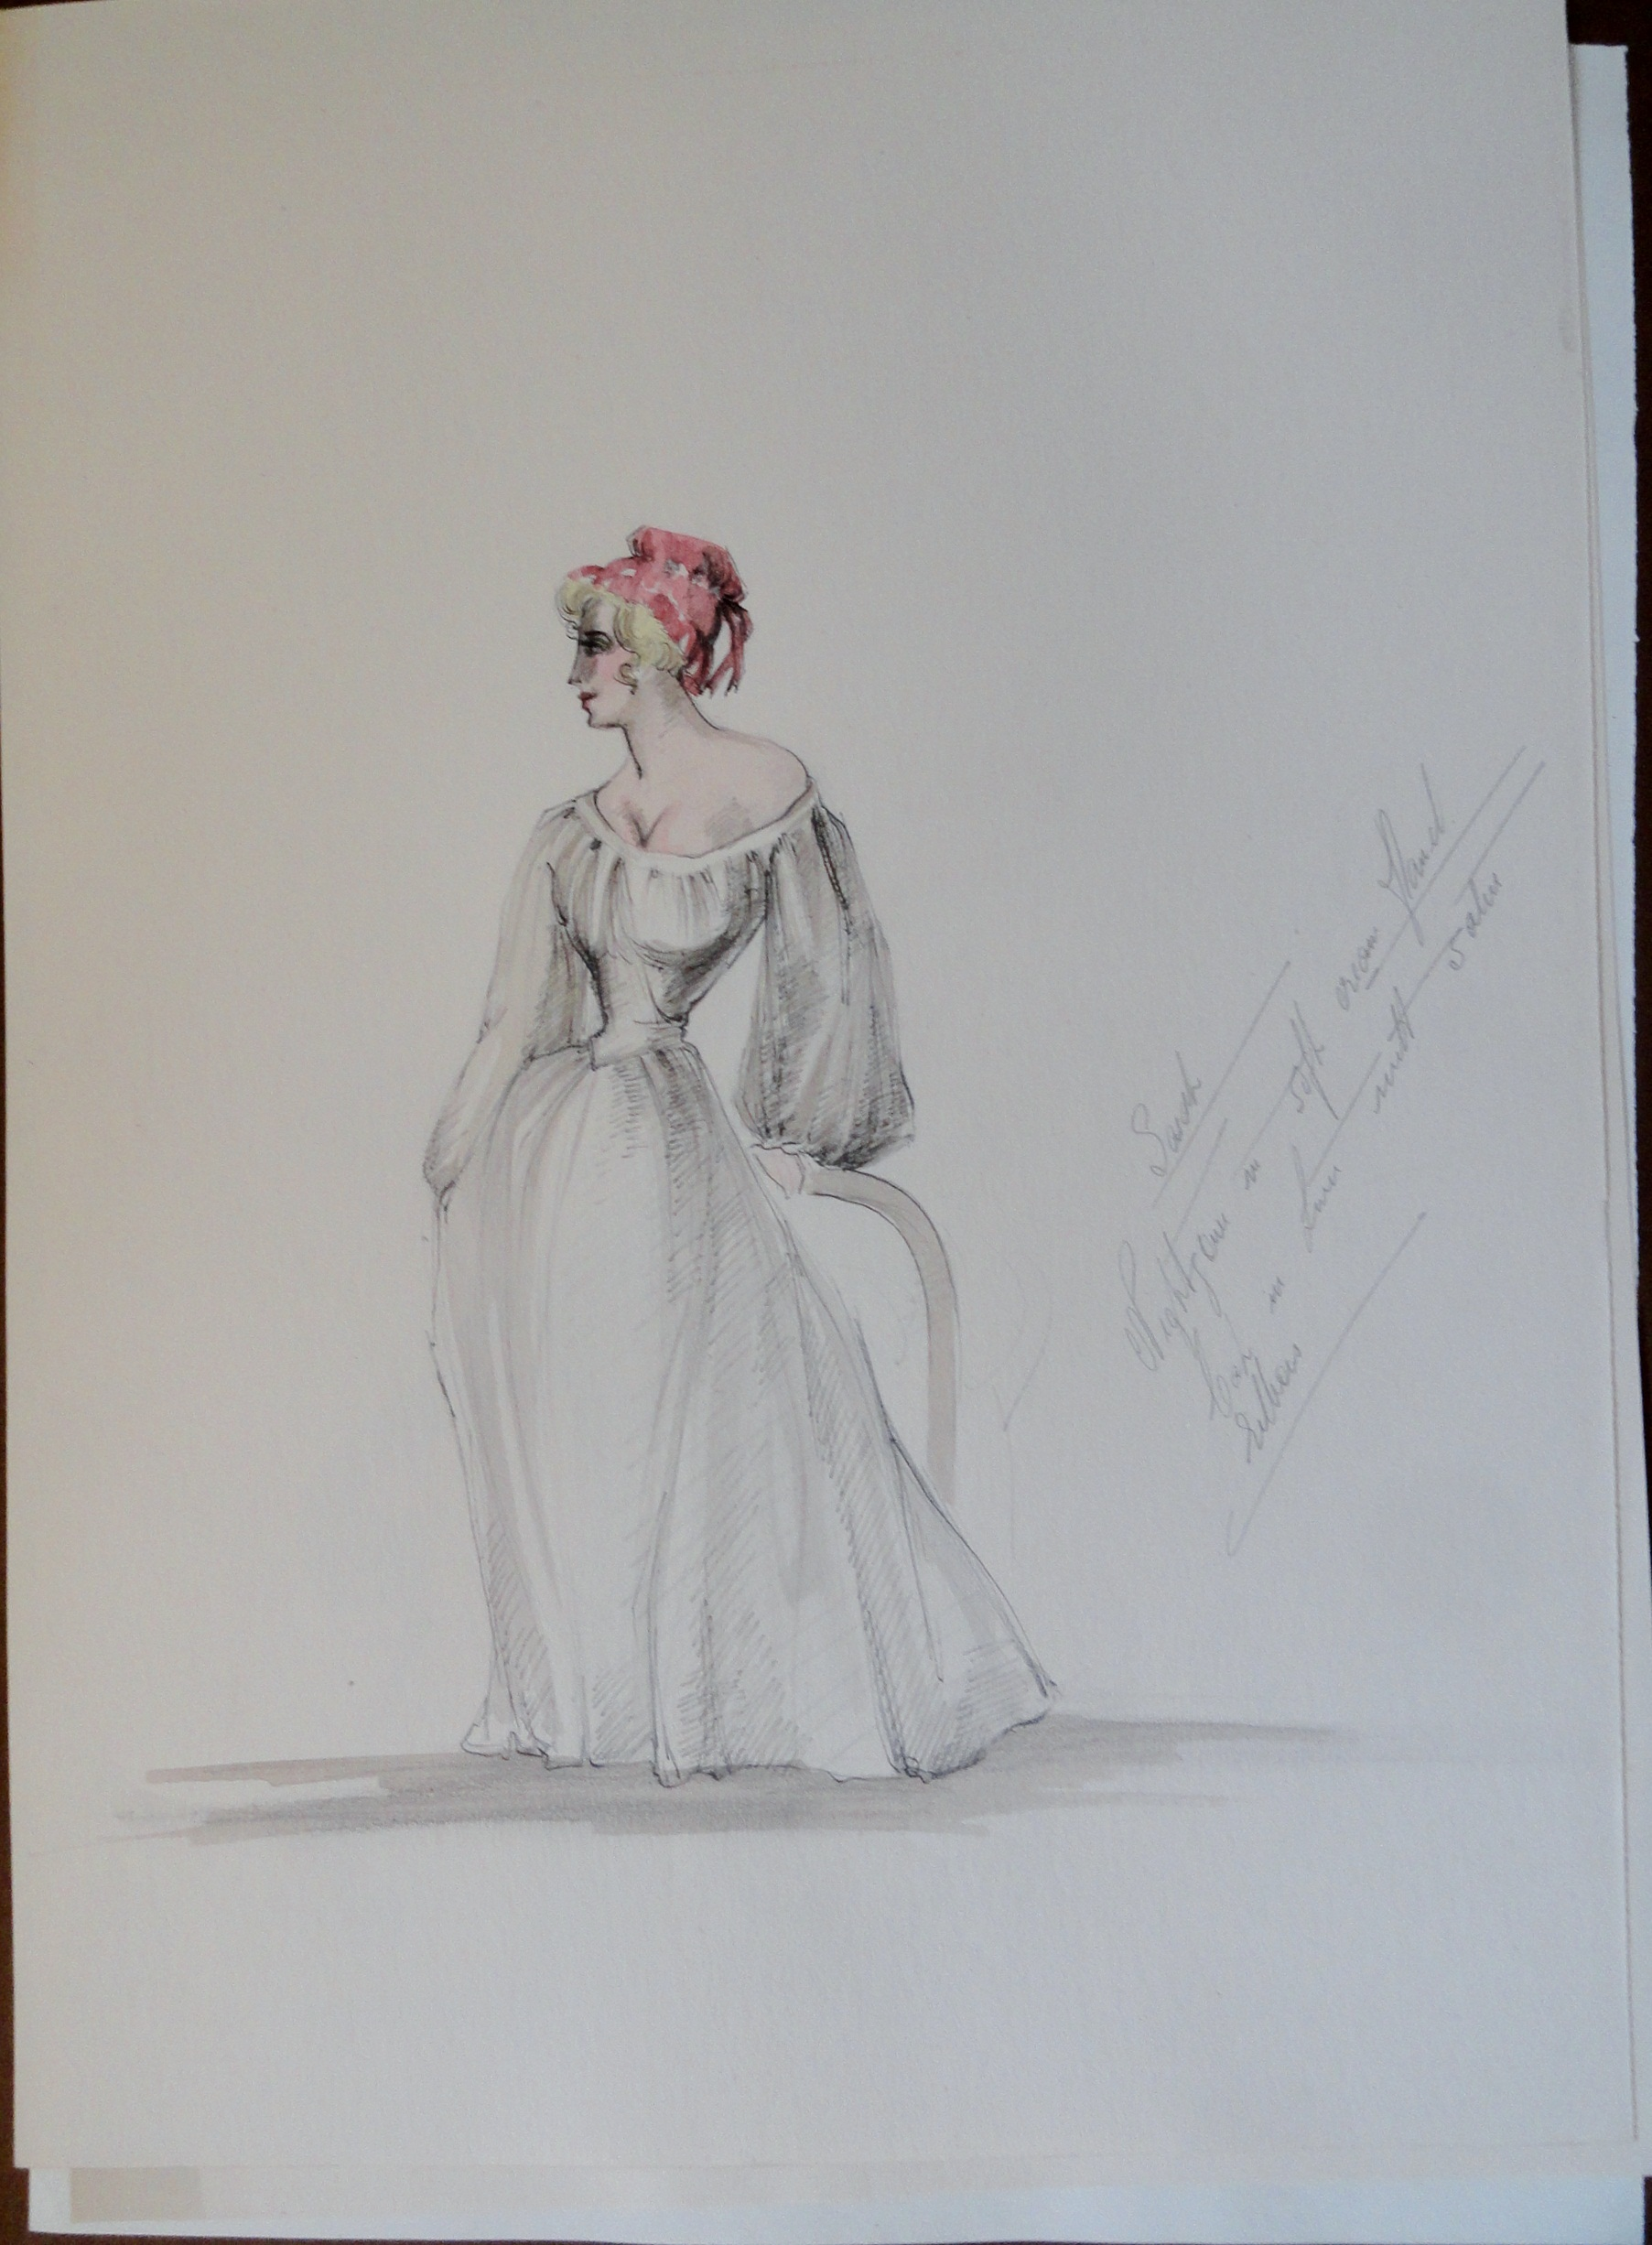 Rachel simple white dress red hat with notes. Unsigned. Pen and ink and watercolor.  From the Rachel Portfolio by Owen Hyde Clark. $50.00